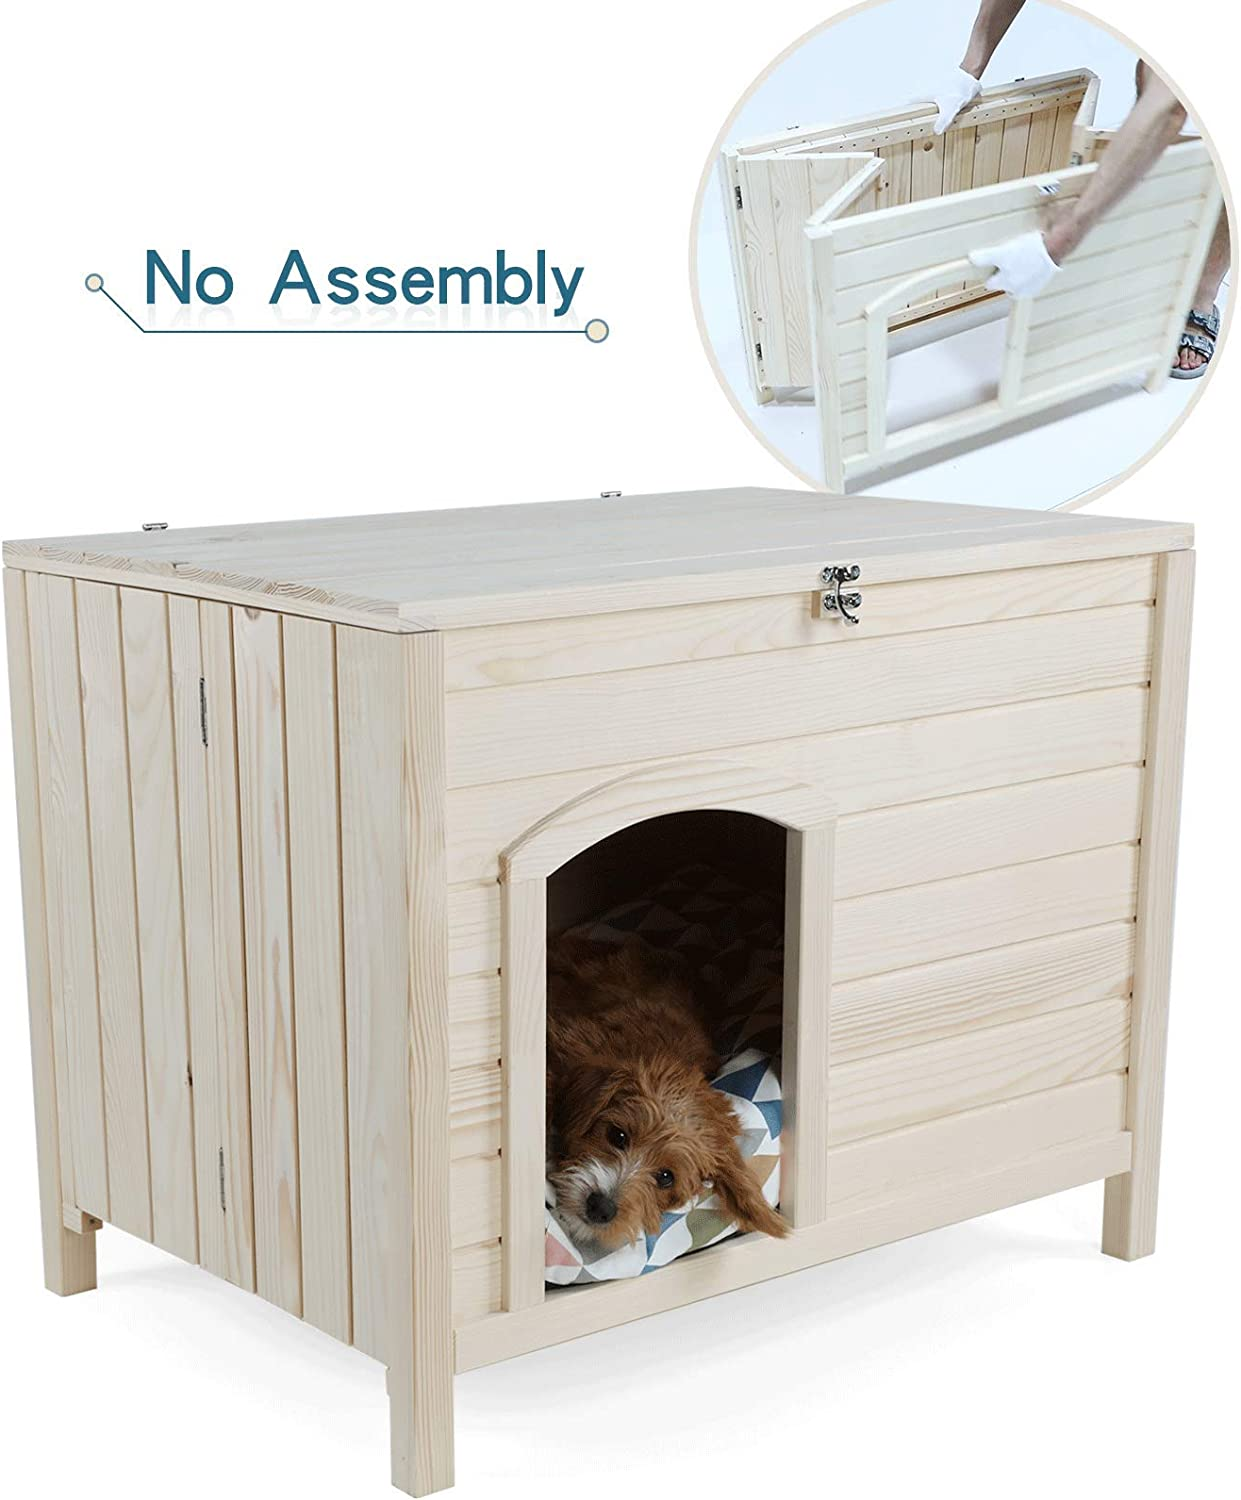 Petsfit No Assembly Indoor Wooden Dog House for Small Dogs 102cm x 53cm x 61cm One Step Installment